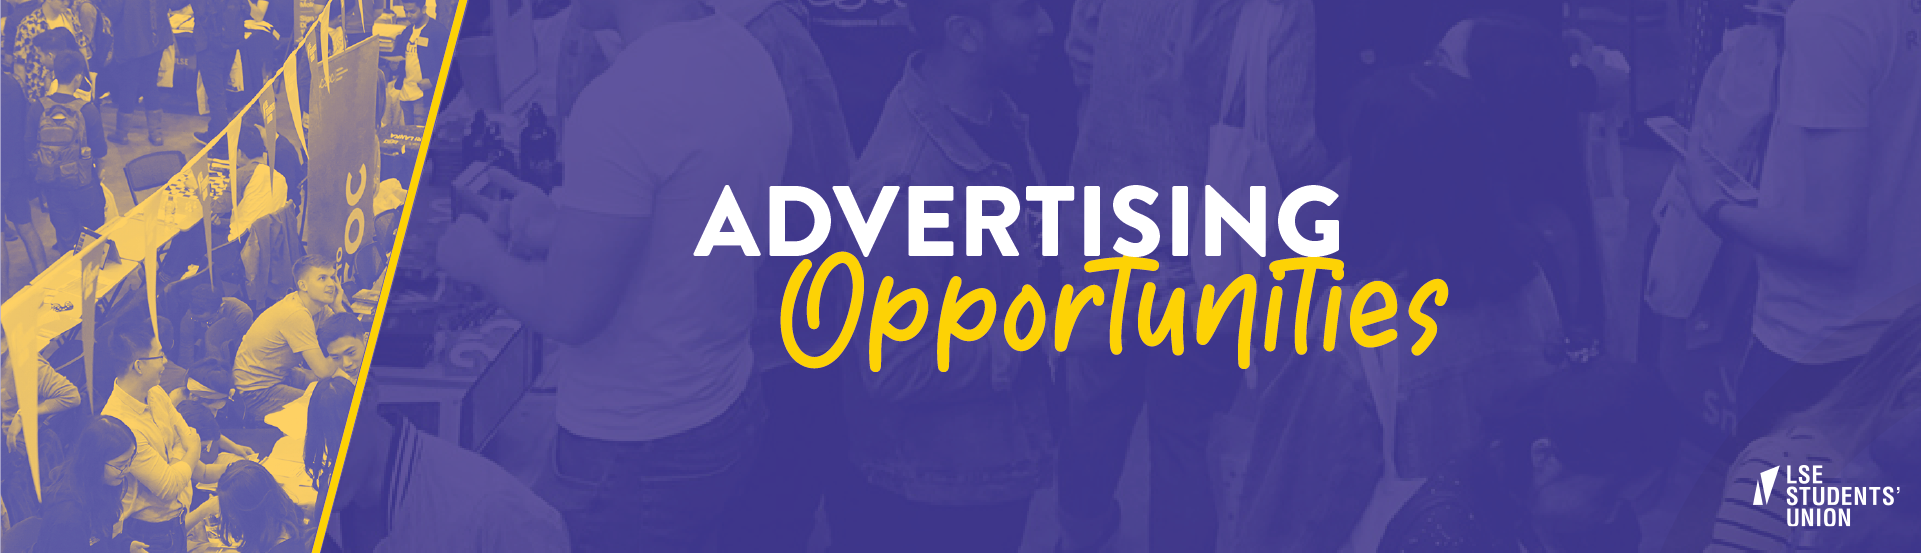 Advertising Opportunities at LSE LSESU